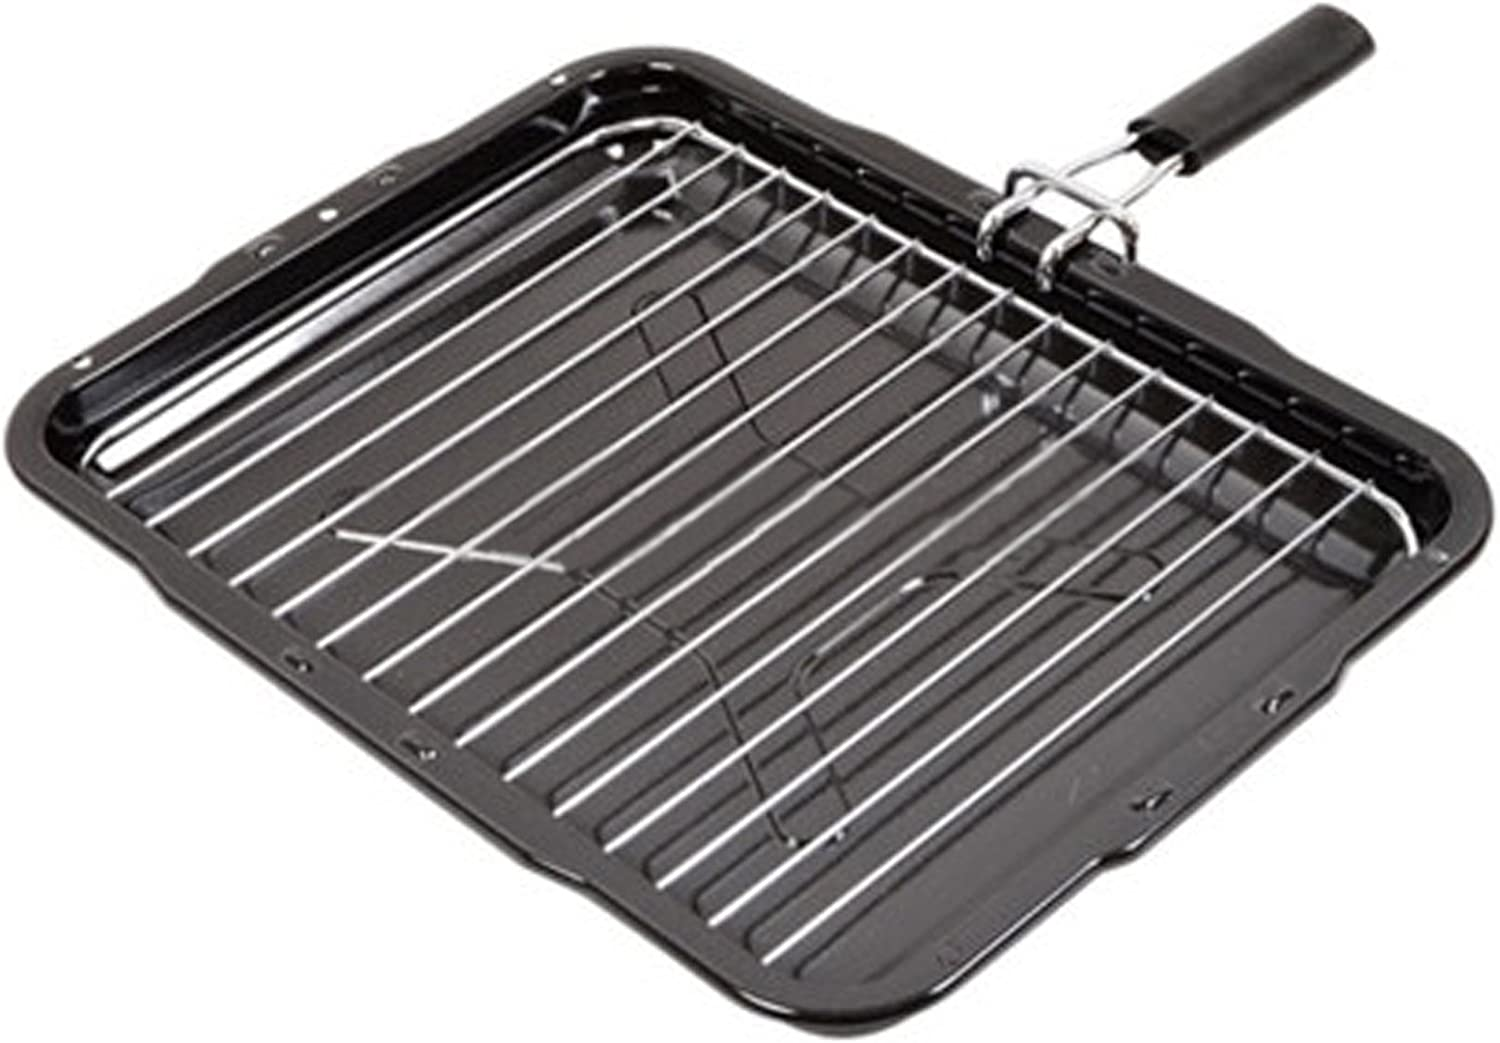 Rack /& Detachable Handle for De Dietrich Oven Cookers SPARES2GO Small Grill Pan